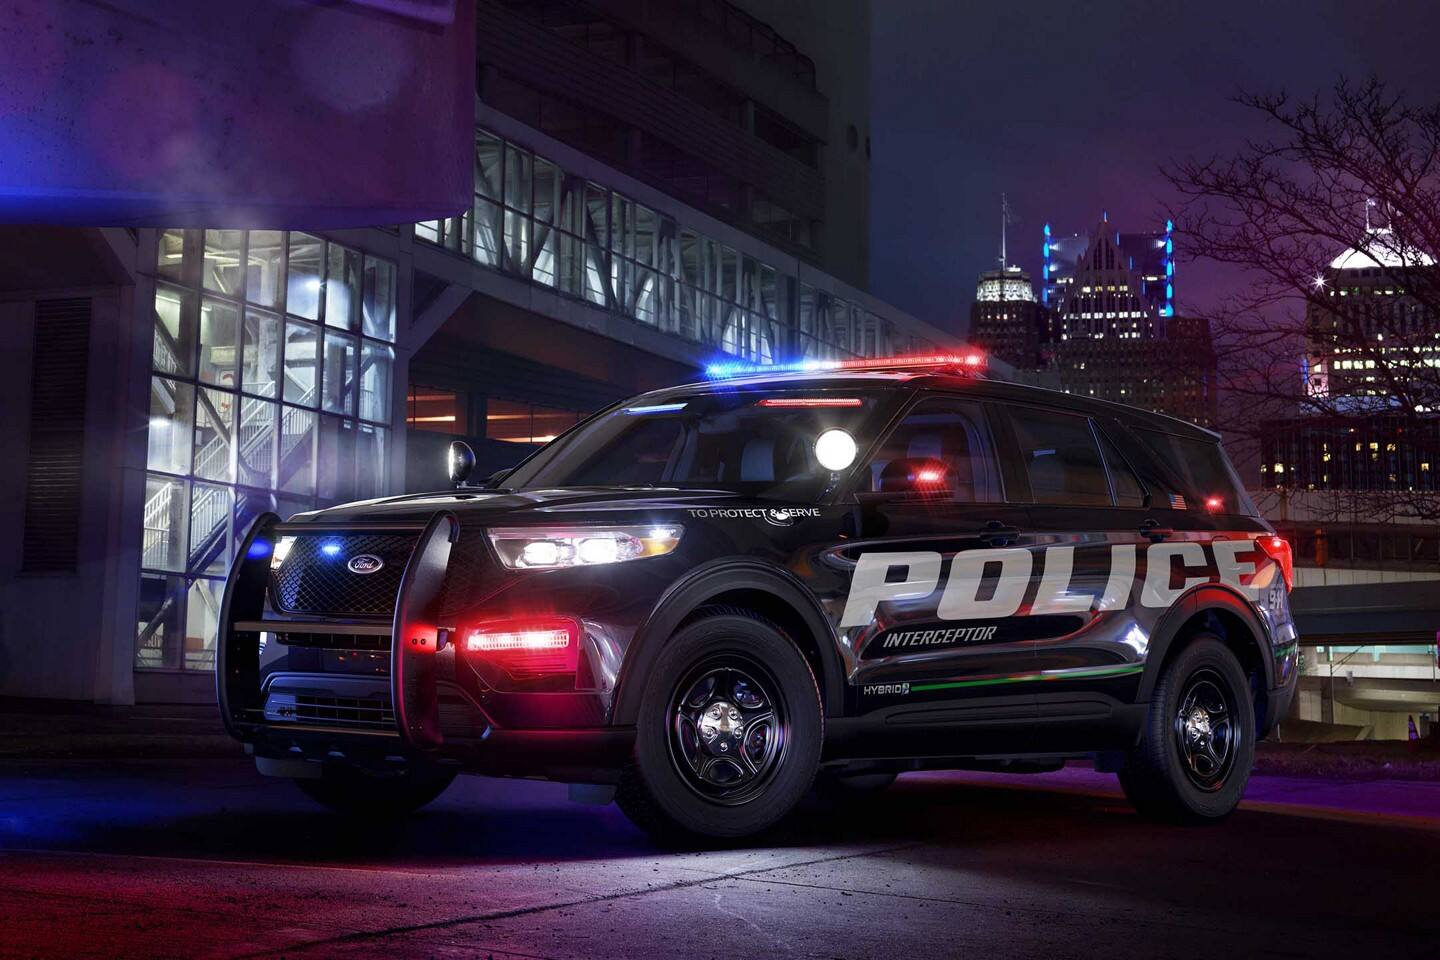 ford police vehicles in spokane wa